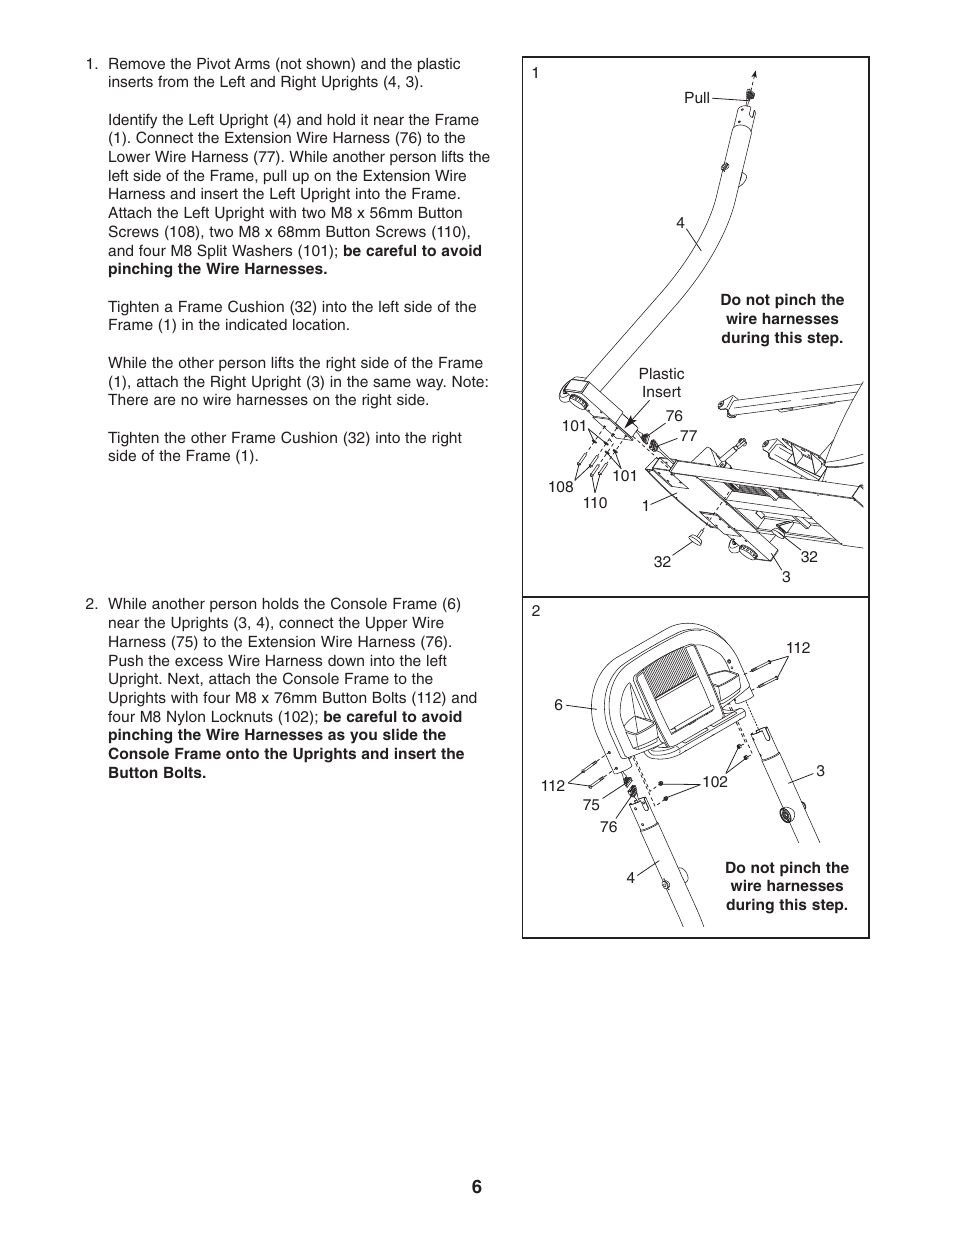 nordictrack cx 1055 elliptical exerciser 30508 0 user manual page rh manualsdir com nordictrack cx 1055 owners manual nordictrack cx 1055 assembly instructions